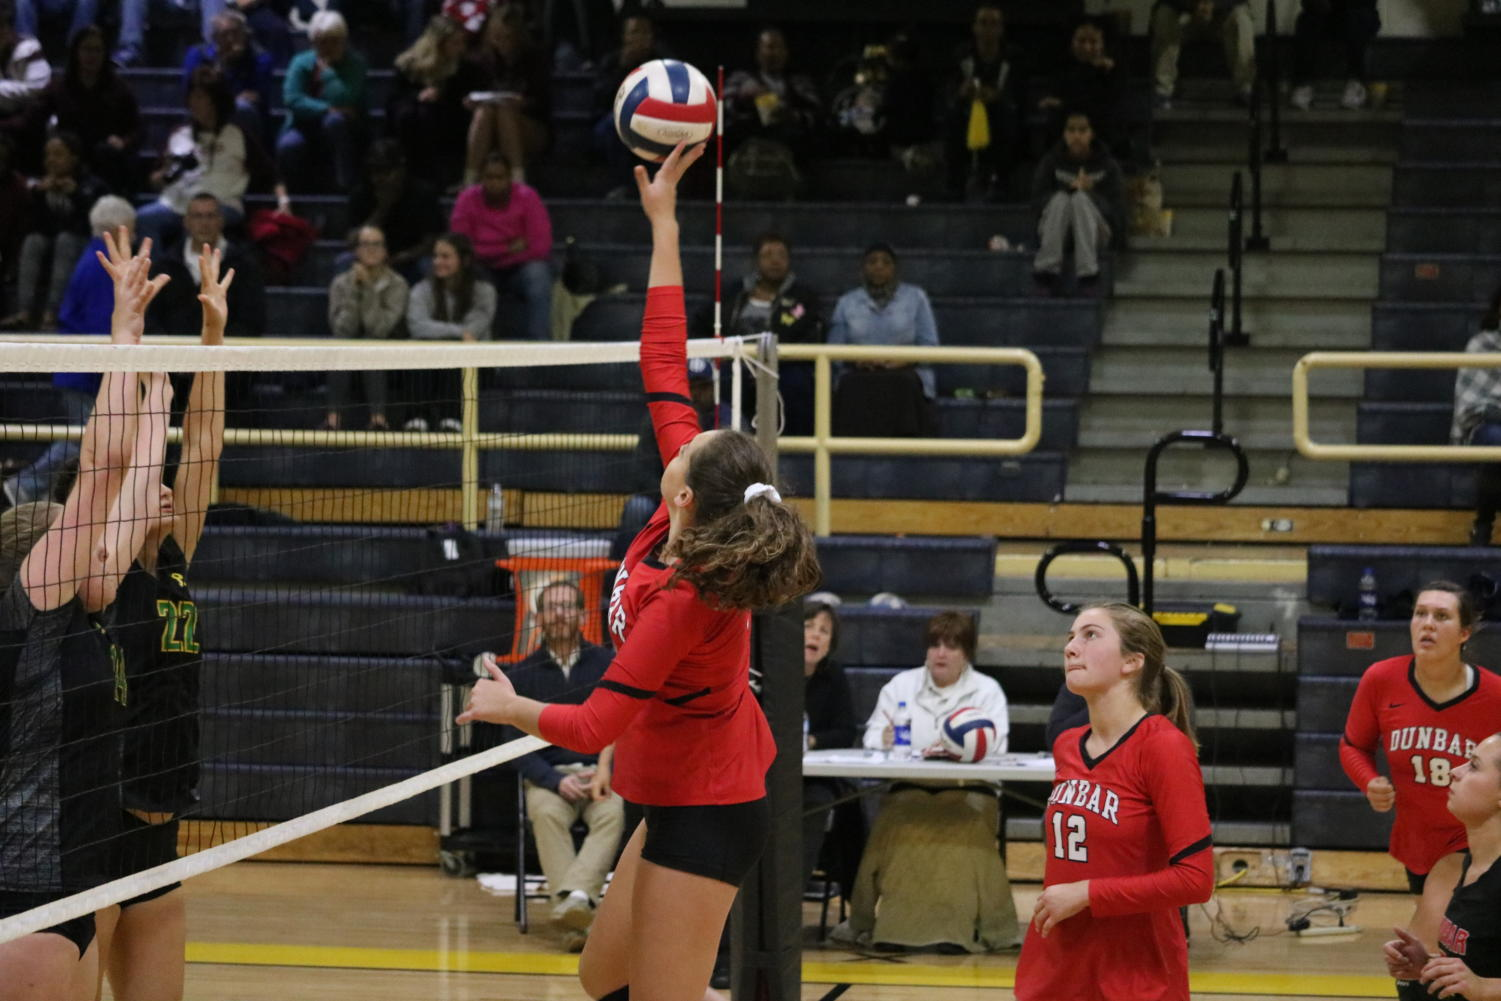 Volleyball Wins Region Semi-Finals Over Station